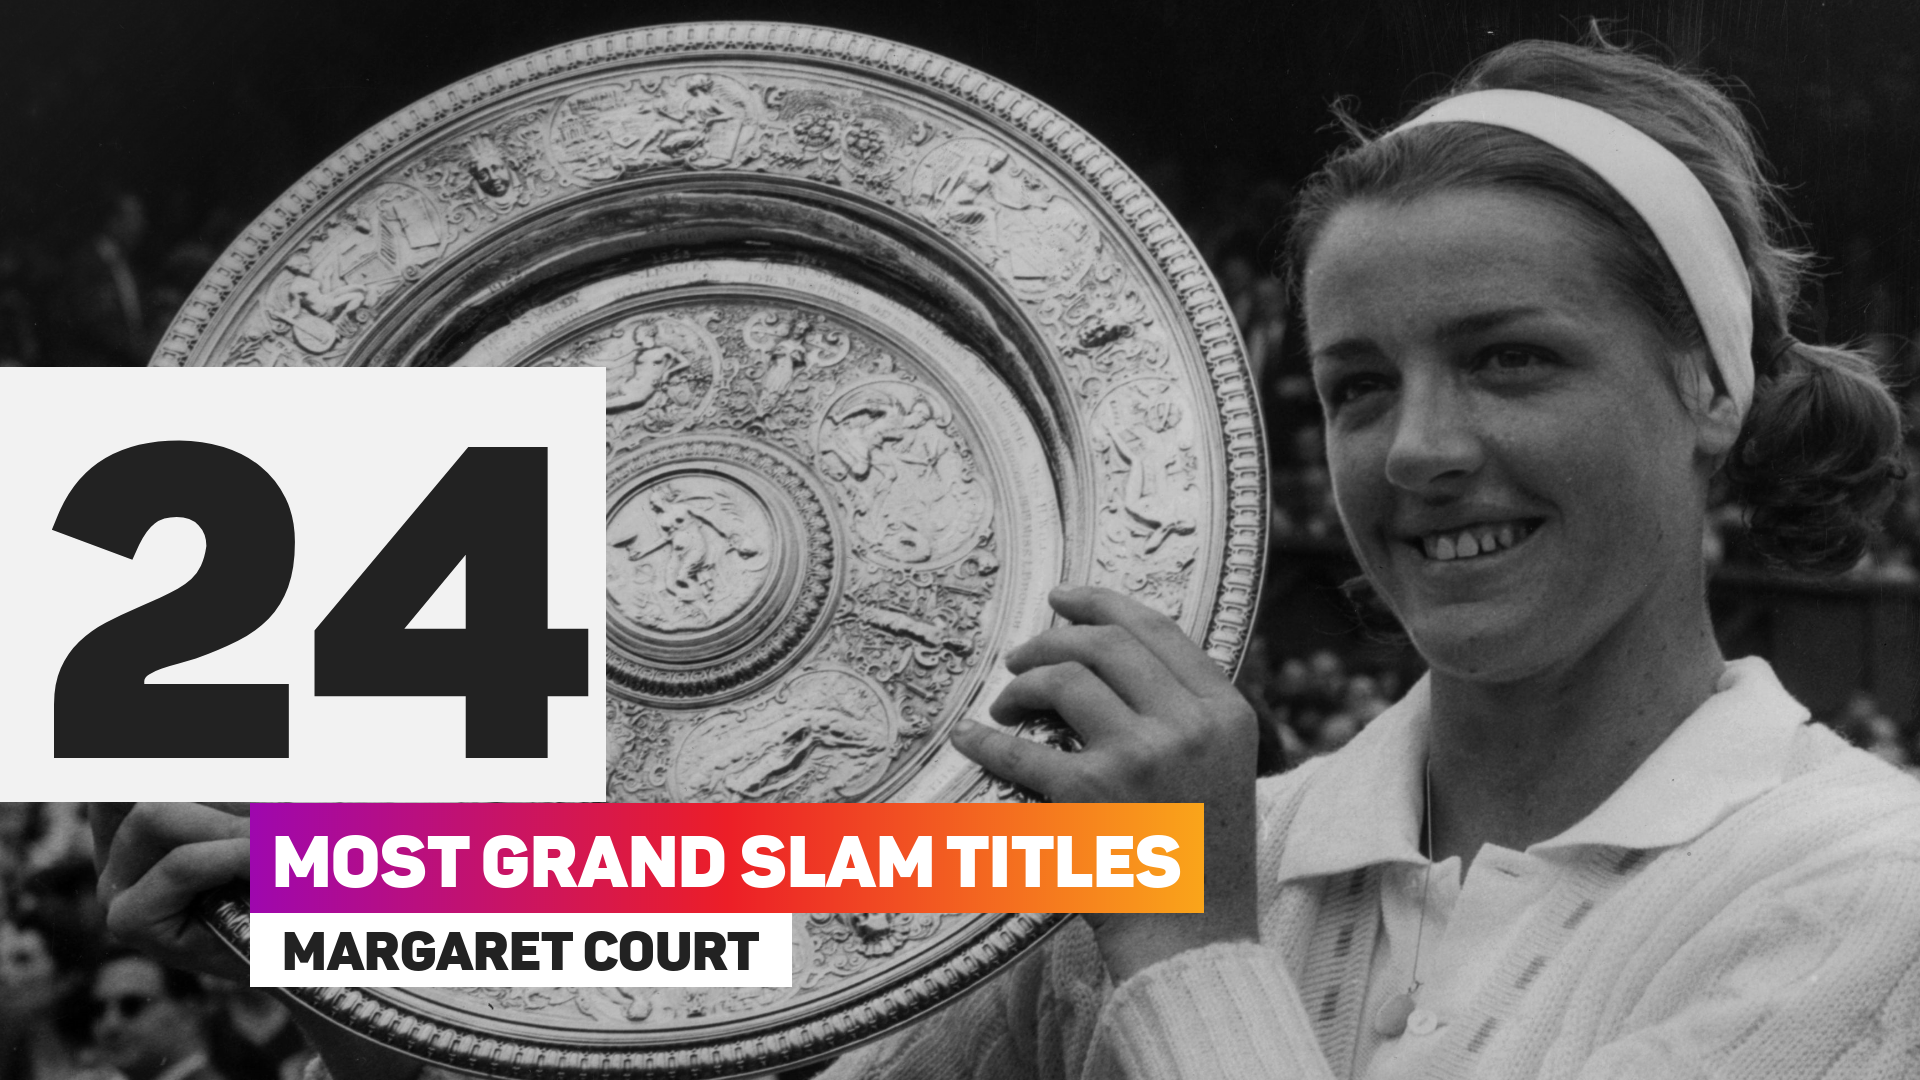 Margaret Court has won the most grand slam singles titles